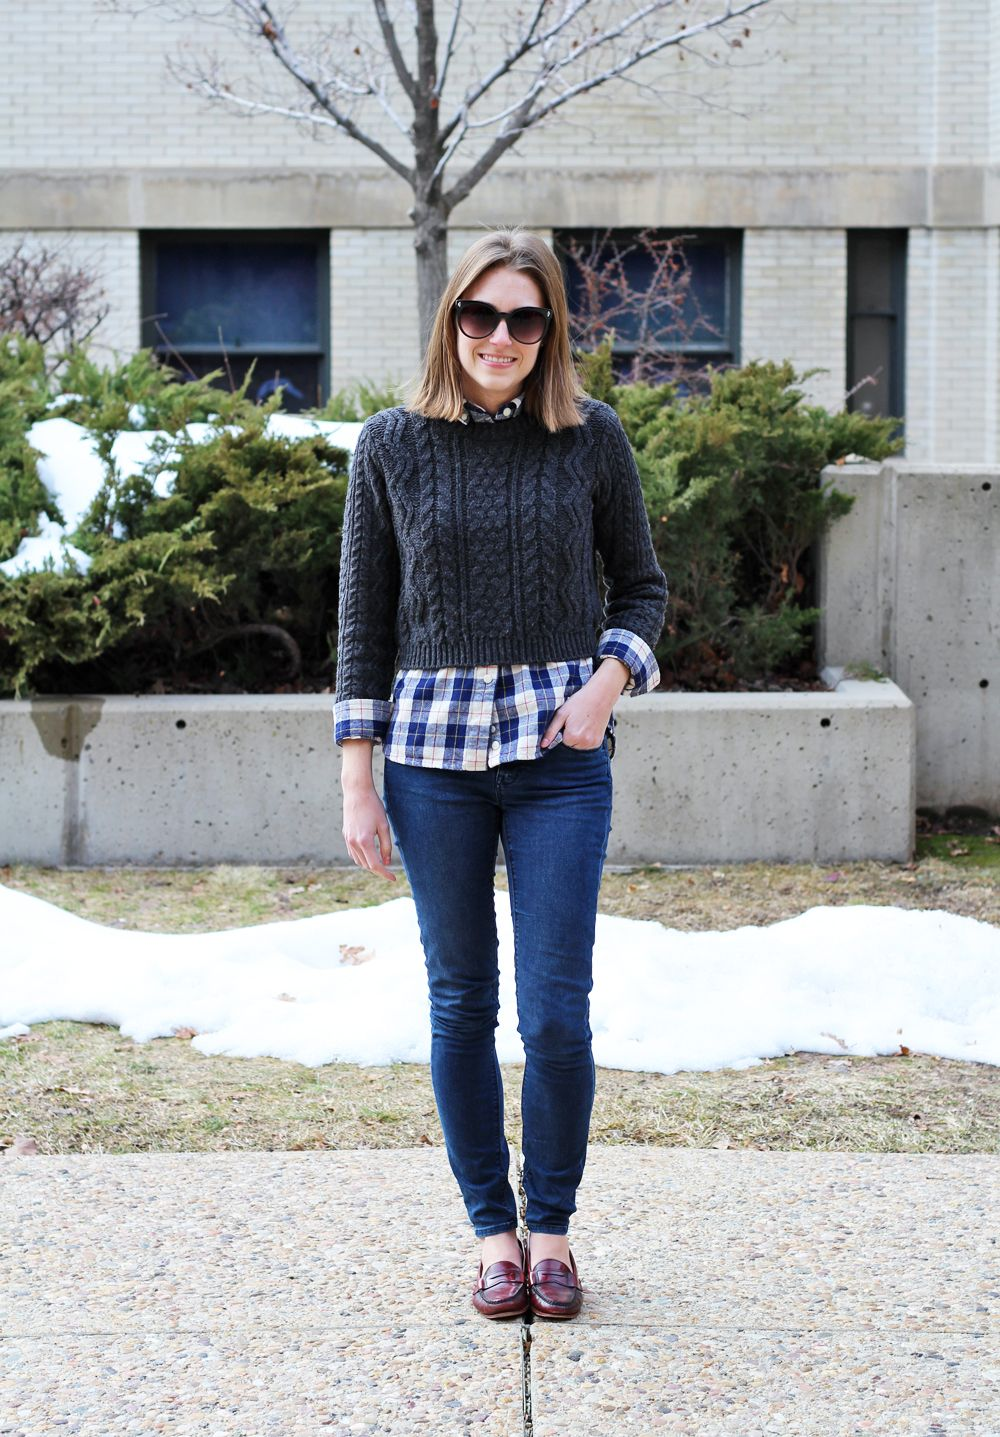 Cropped sweater over plaid flannel shirt af98e9d93